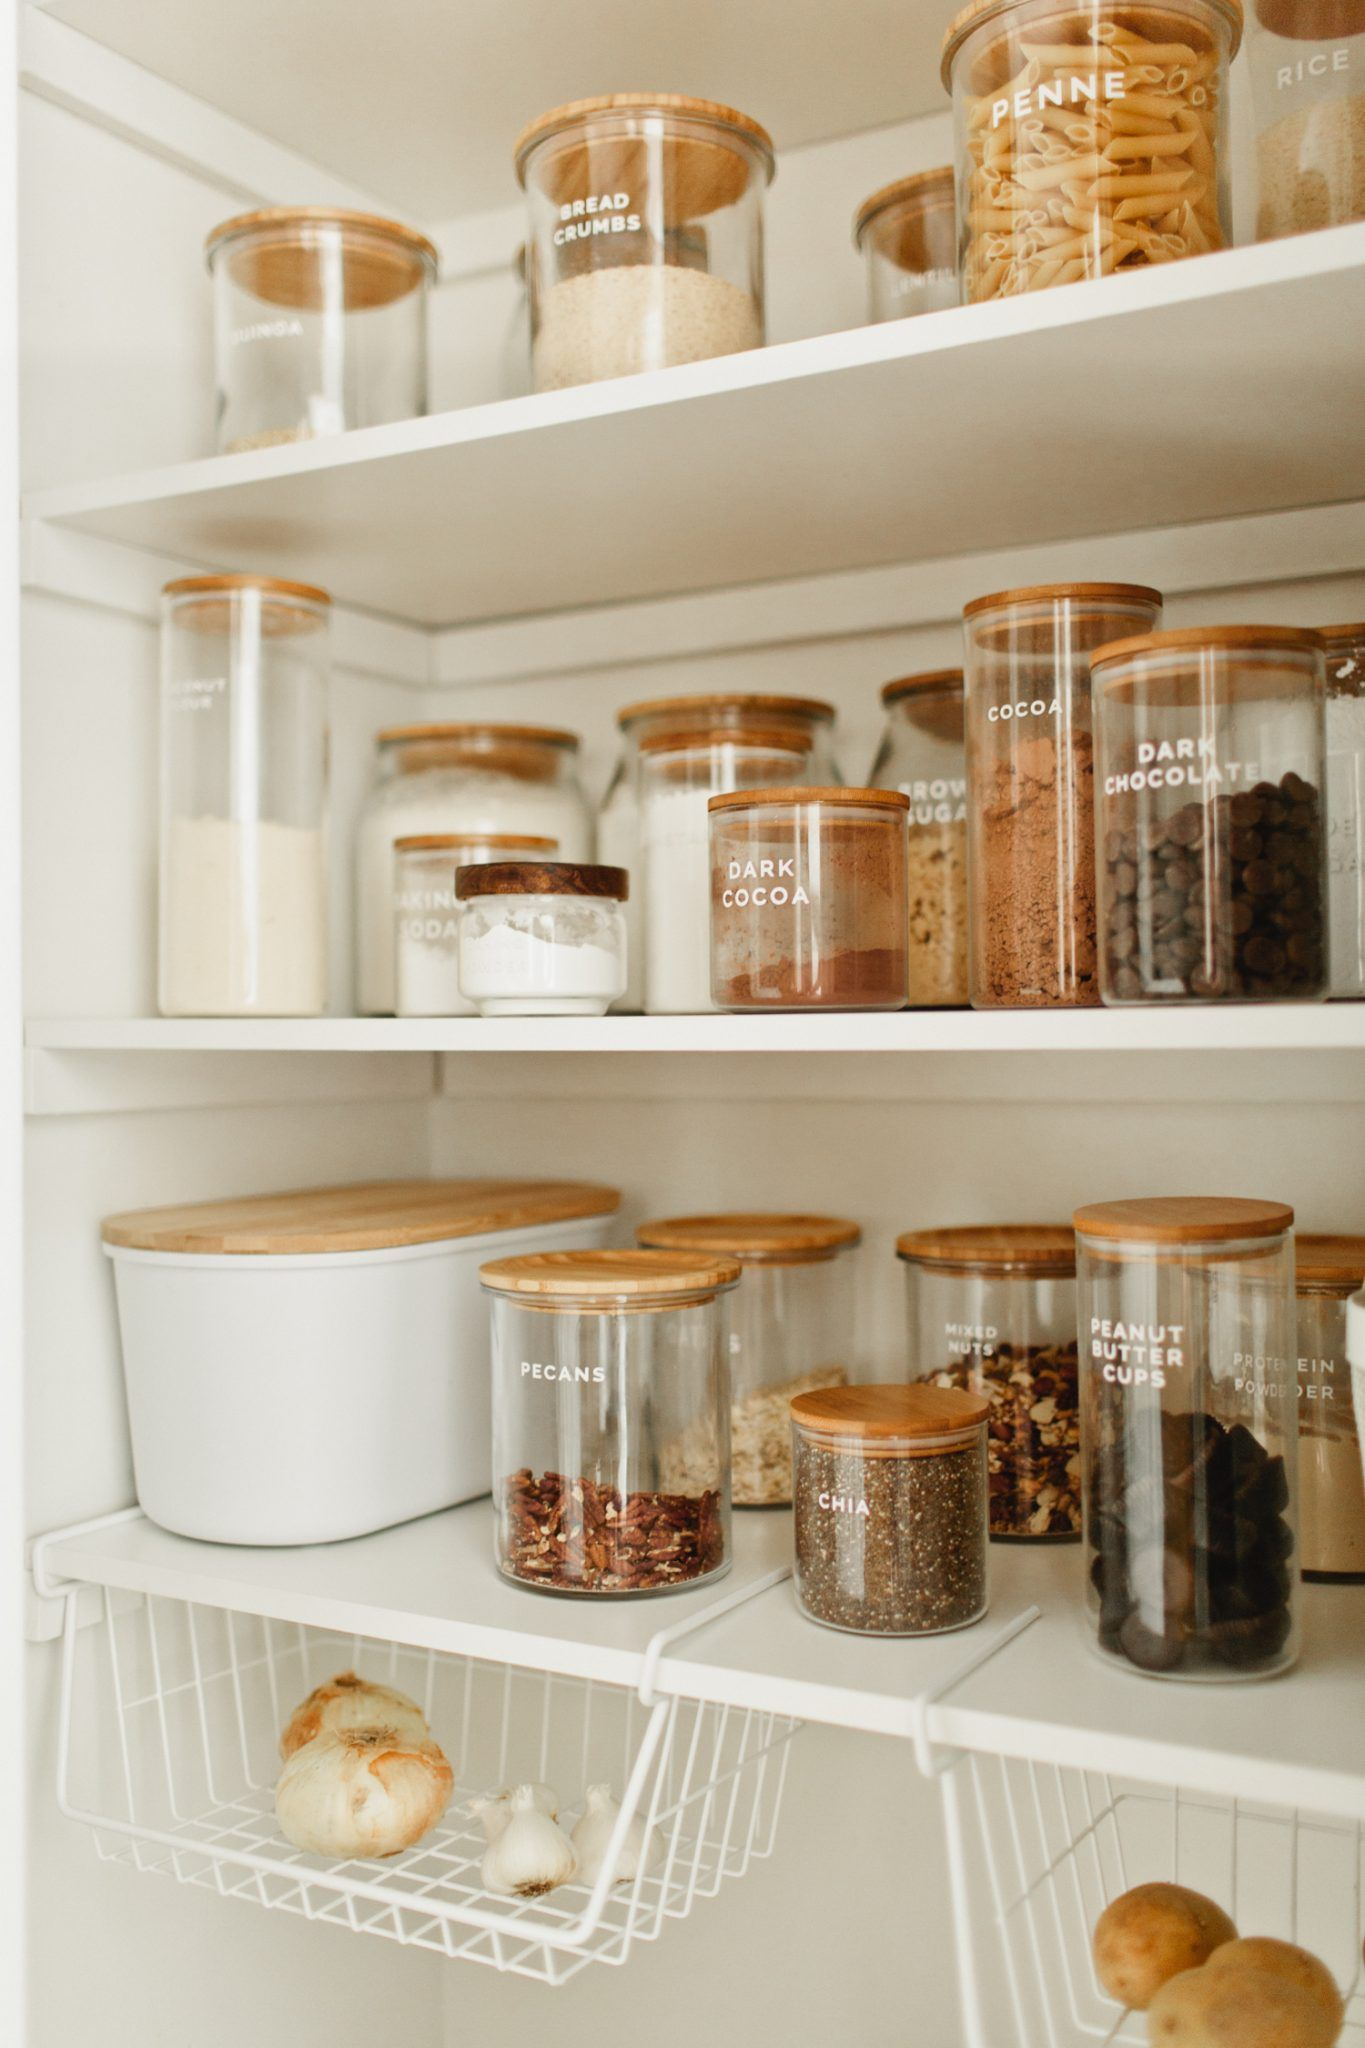 5 Simple Steps to Small Pantry Organization